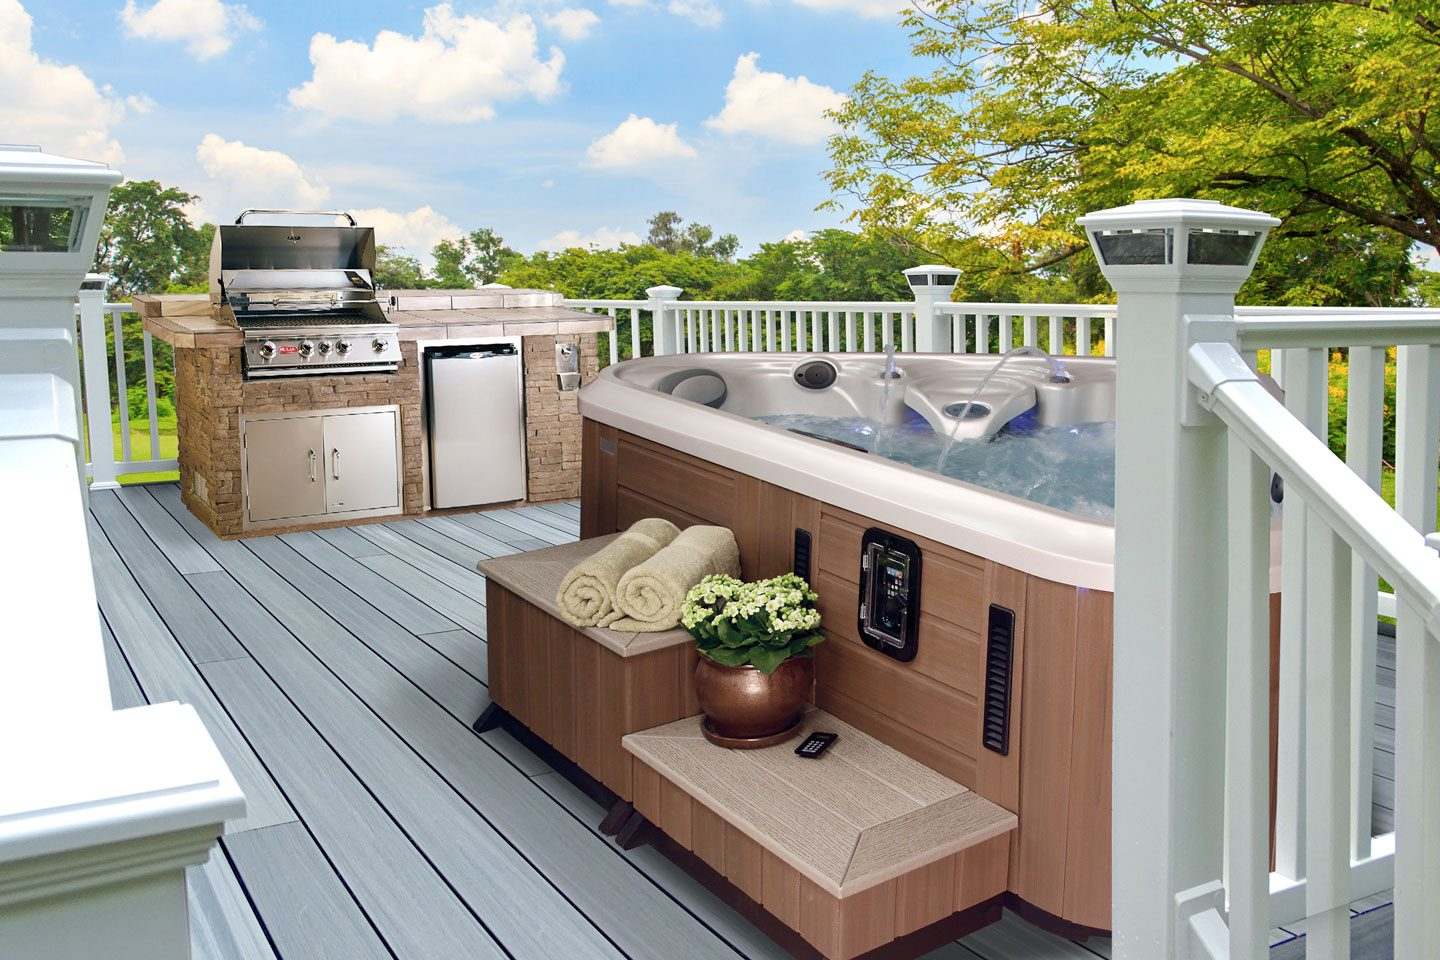 Amy-Palmer---Composite-Deck-with-Outdoor-Kitchen-Island-and-Hot-Tub